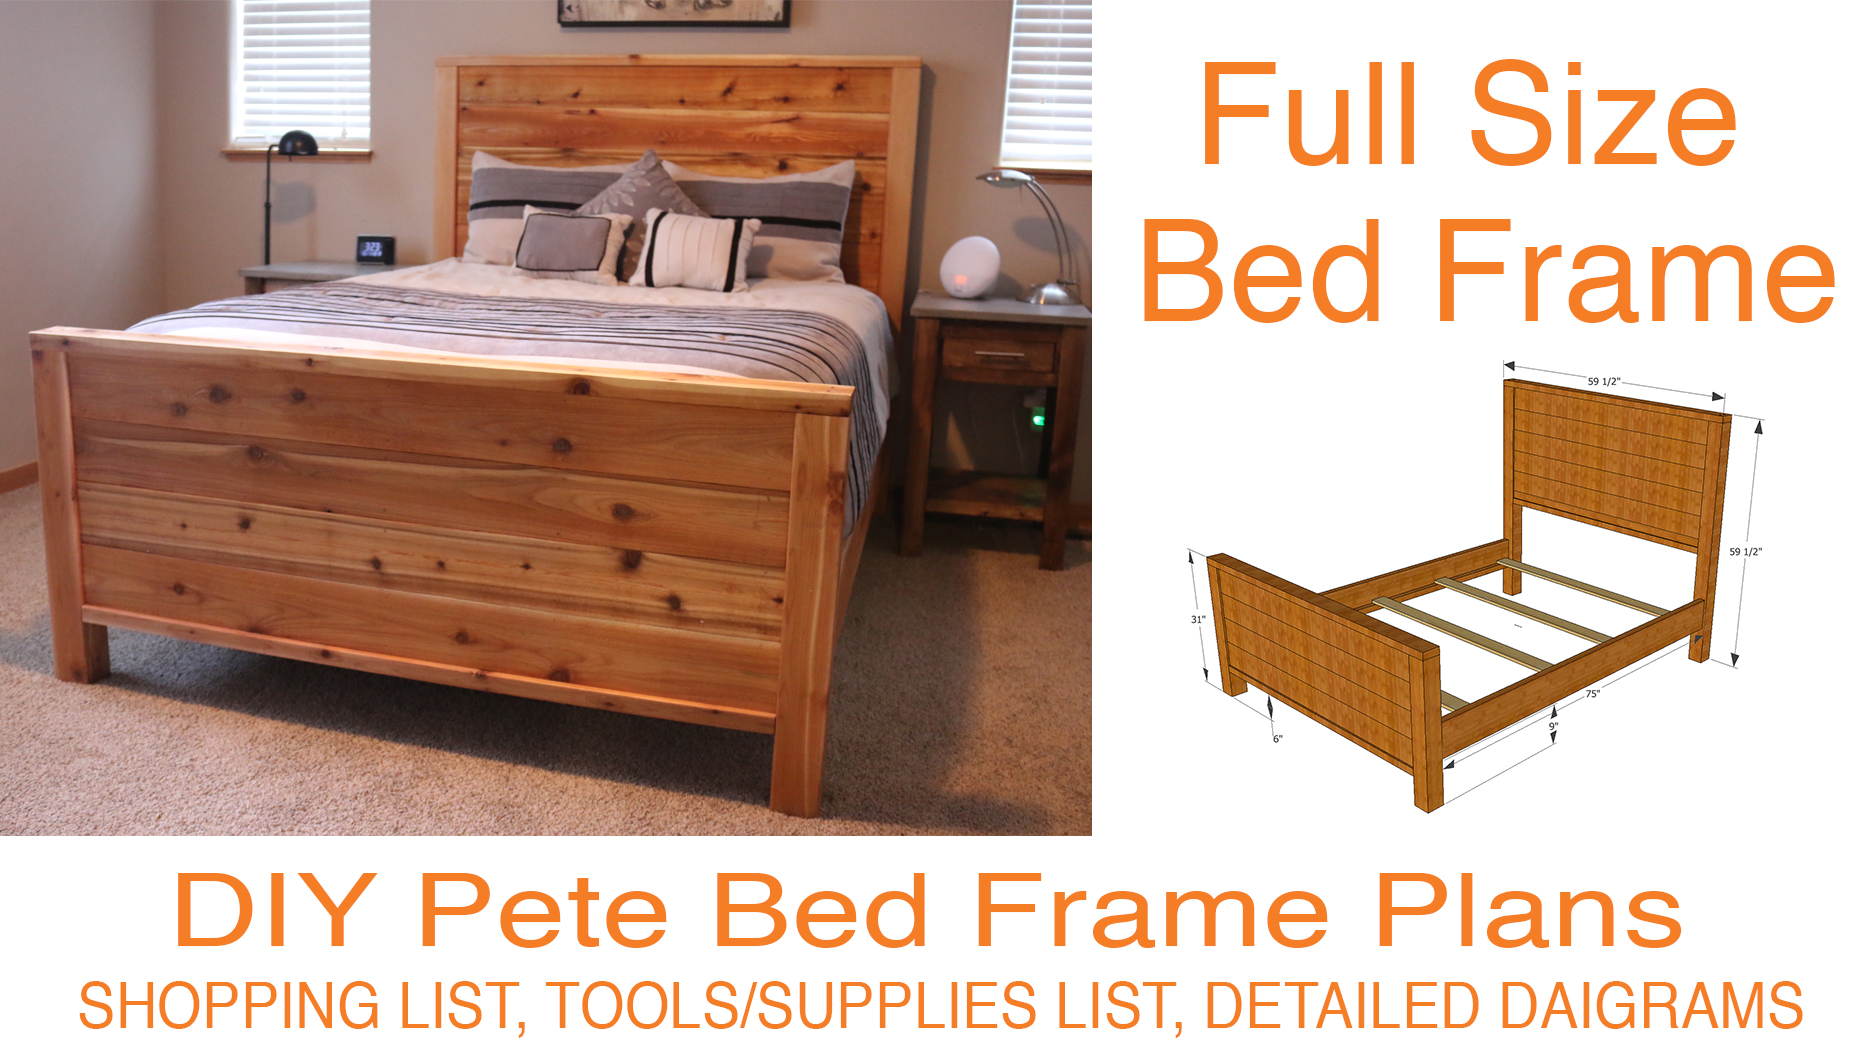 full bed plans - Wood Full Size Bed Frame